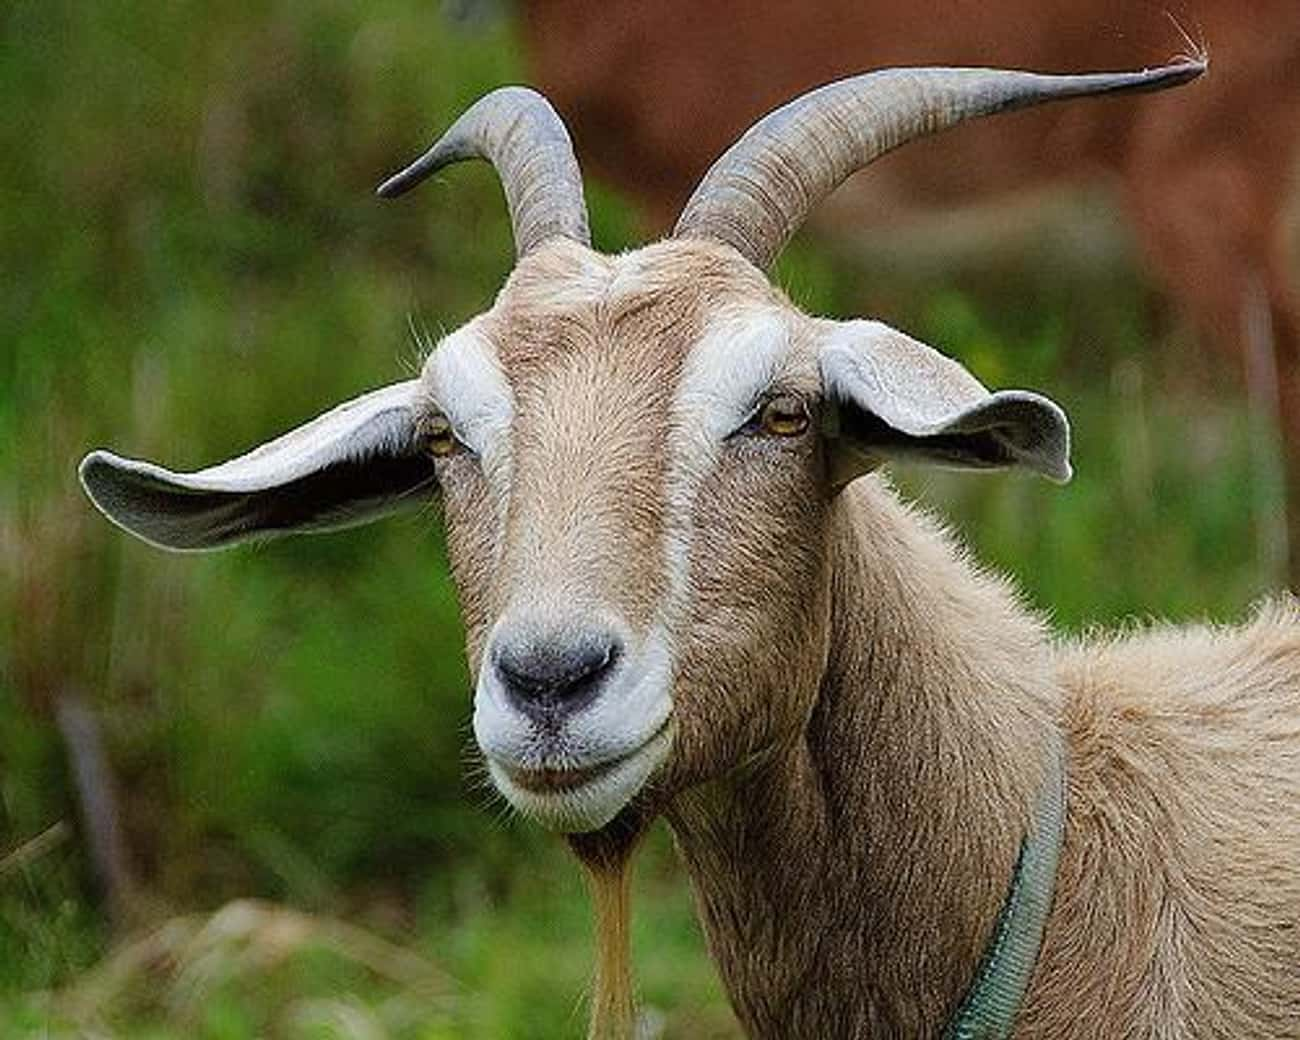 Goat Arrested for Chomping Down on Judge's Garden